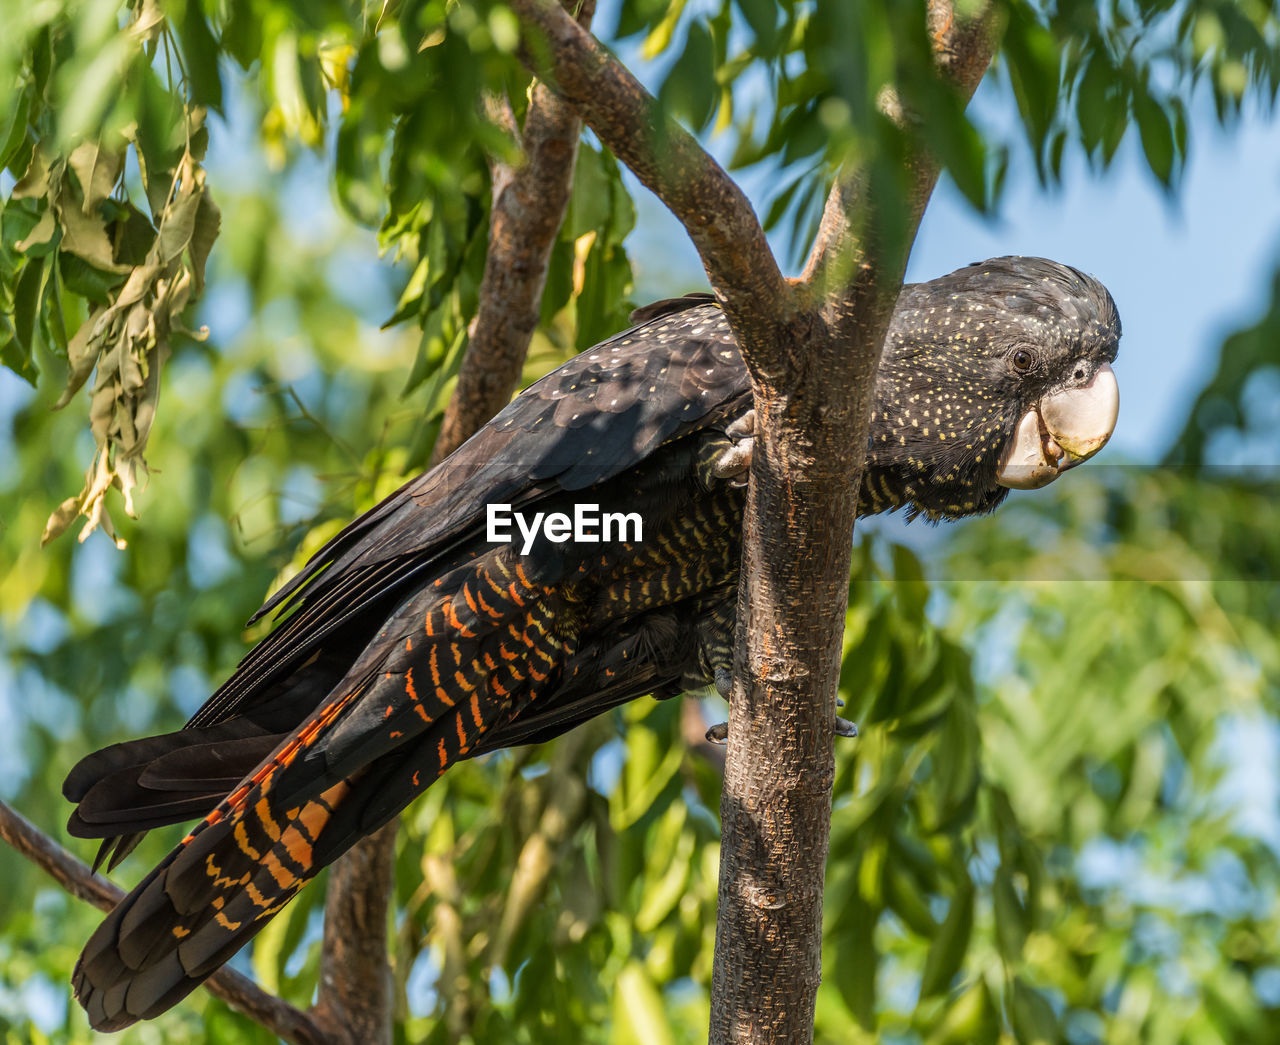 animals in the wild, animal wildlife, animal, animal themes, one animal, vertebrate, plant, focus on foreground, tree, no people, perching, nature, branch, bird, day, low angle view, close-up, sunlight, outdoors, woodpecker, animal wing, butterfly - insect